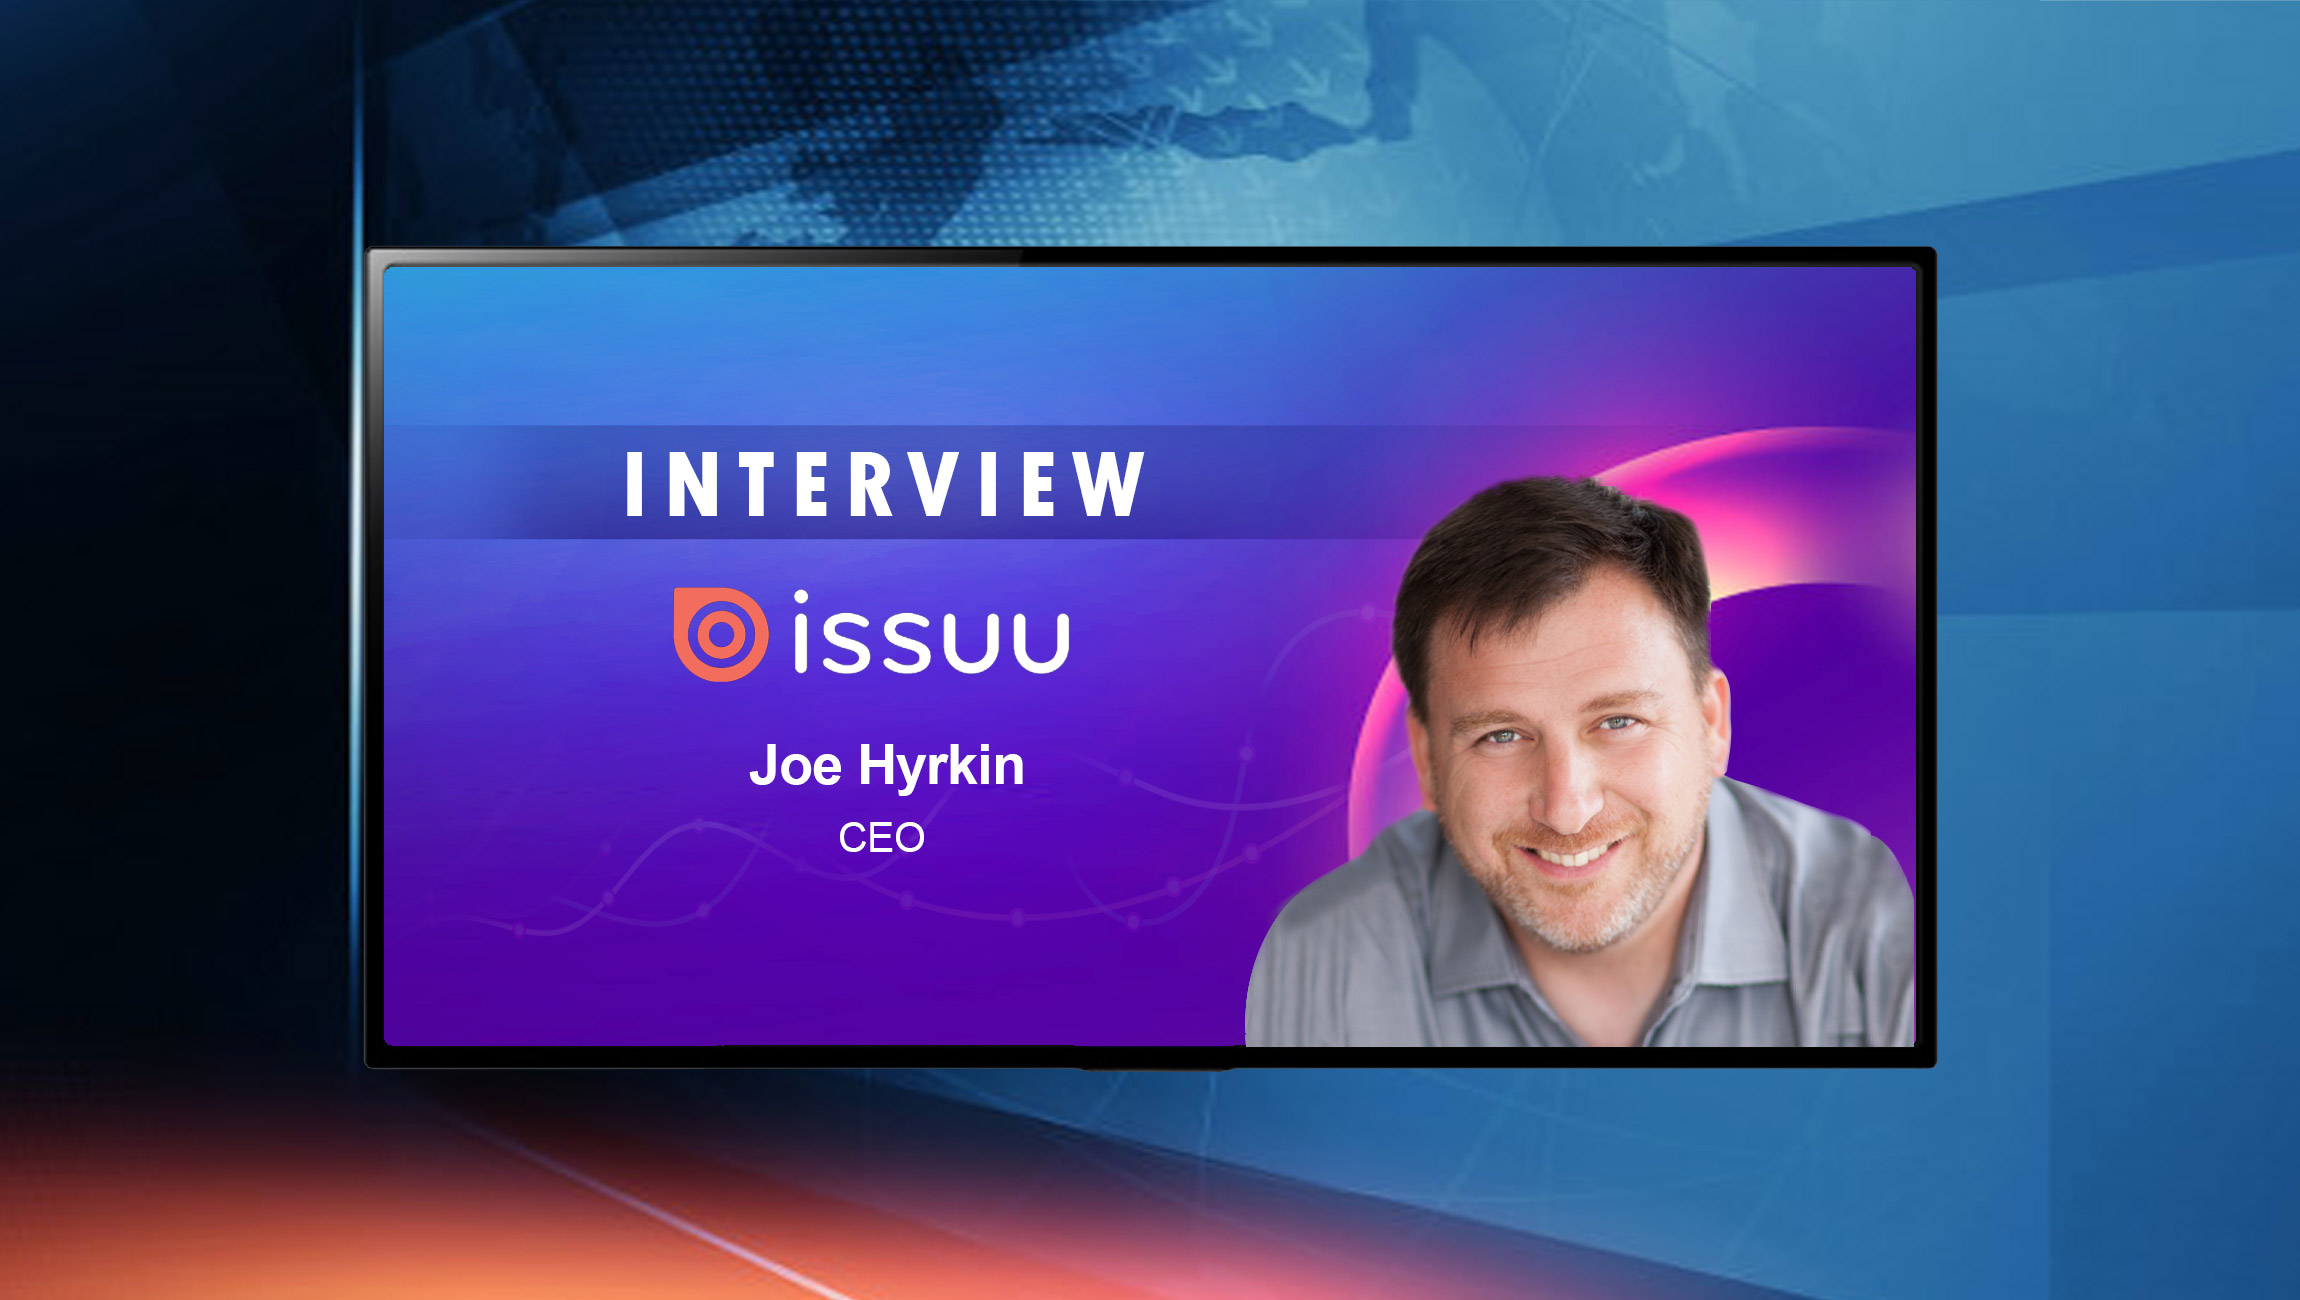 SalesTechStar Interview with Joe Hyrkin, CEO of Issuu Marketing and Sales Tricks for a Remote World